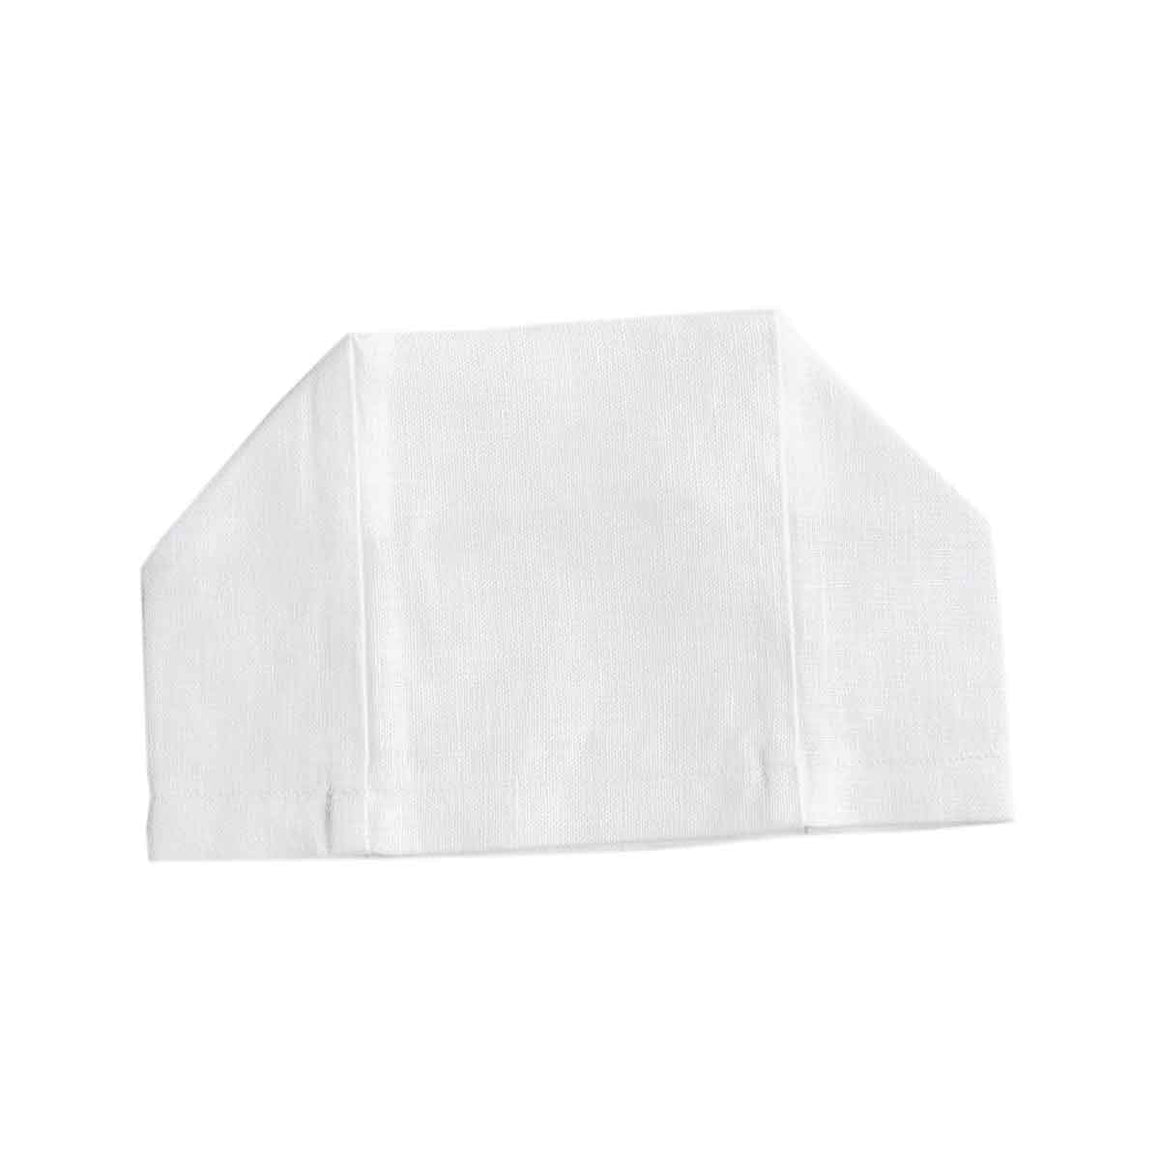 En Plain Air Tissue Box Cover | Garden Folly Fine Linens - tissue box covers for embroidering, fancy linen tissue box covers, European linen tissue box covers